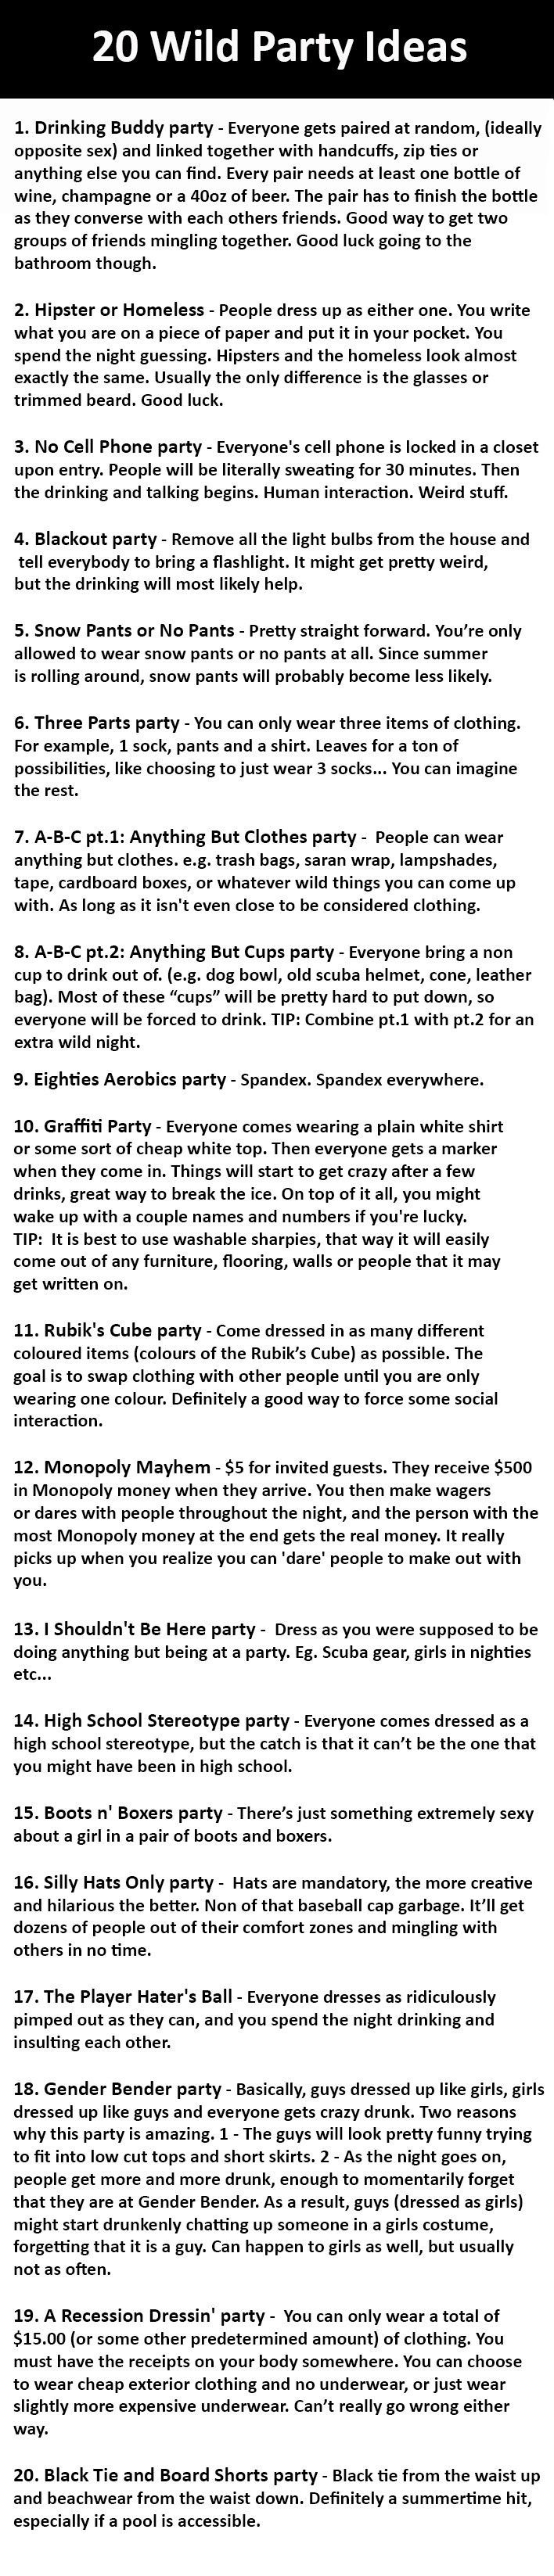 20 (college) party ideas. Could come in handy for ultimate Frisbee tournaments